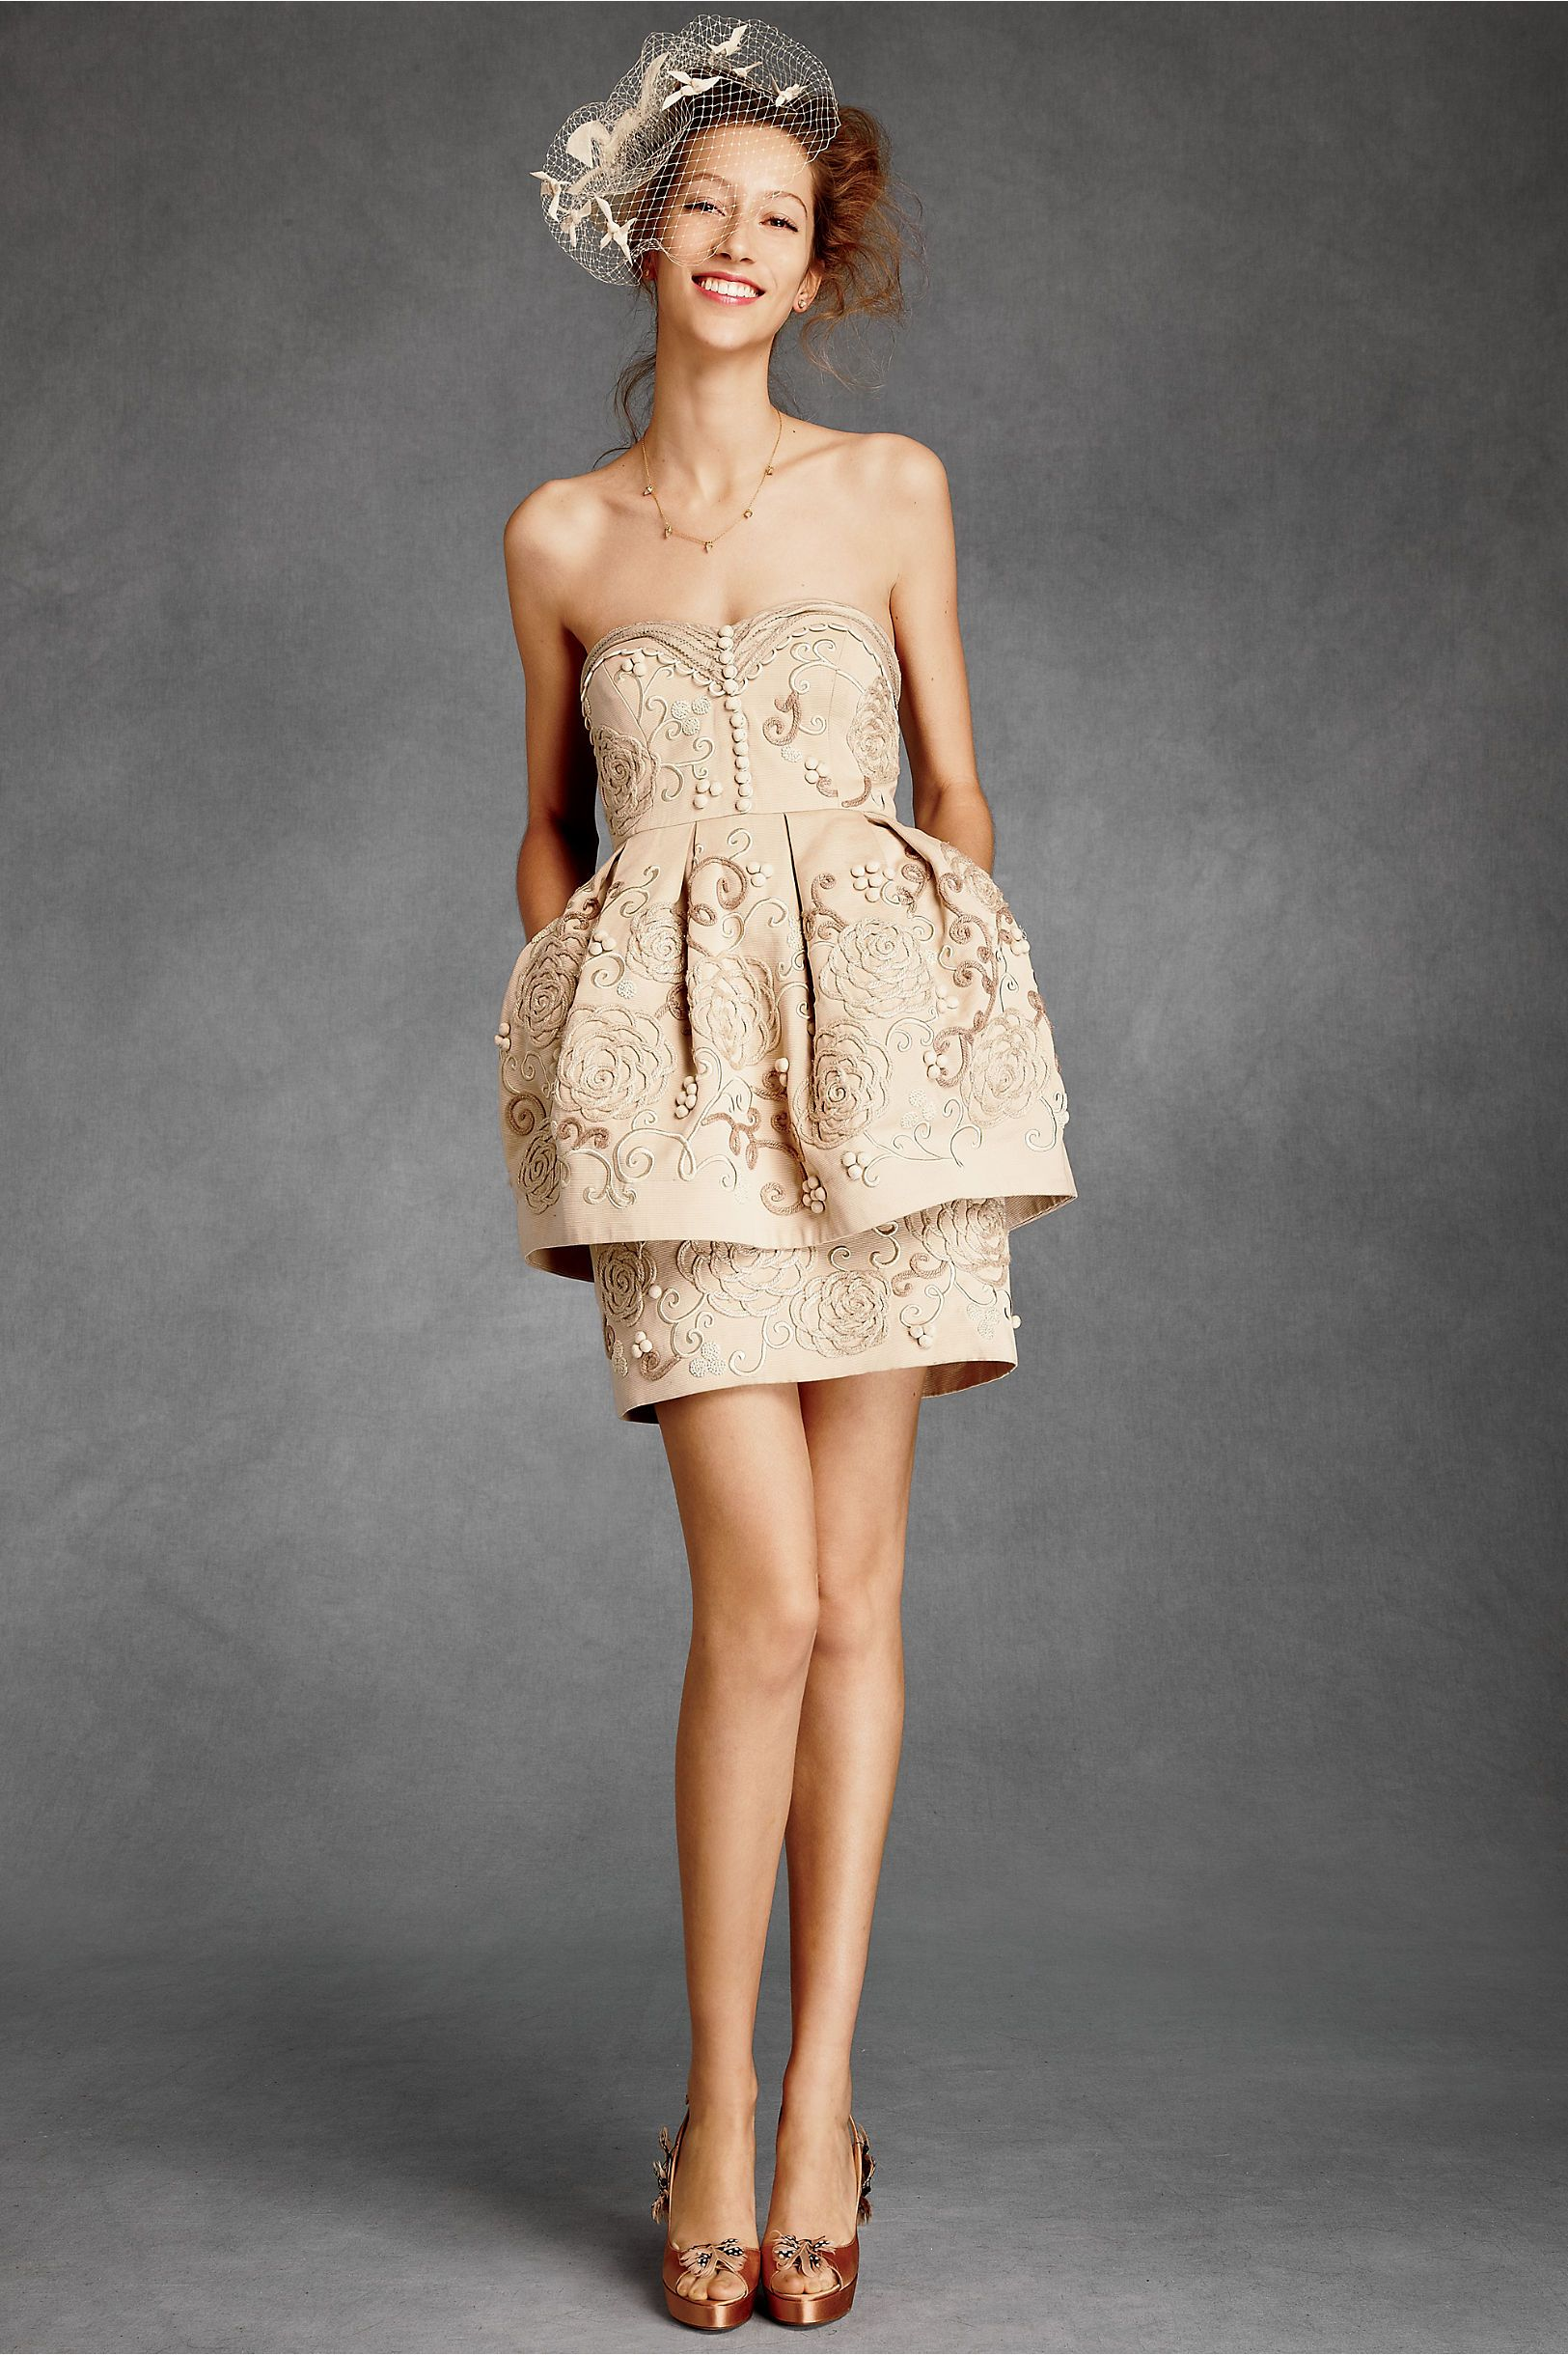 9afd960e5a Very beautiful dress. I wish I could expend that amount of money ...